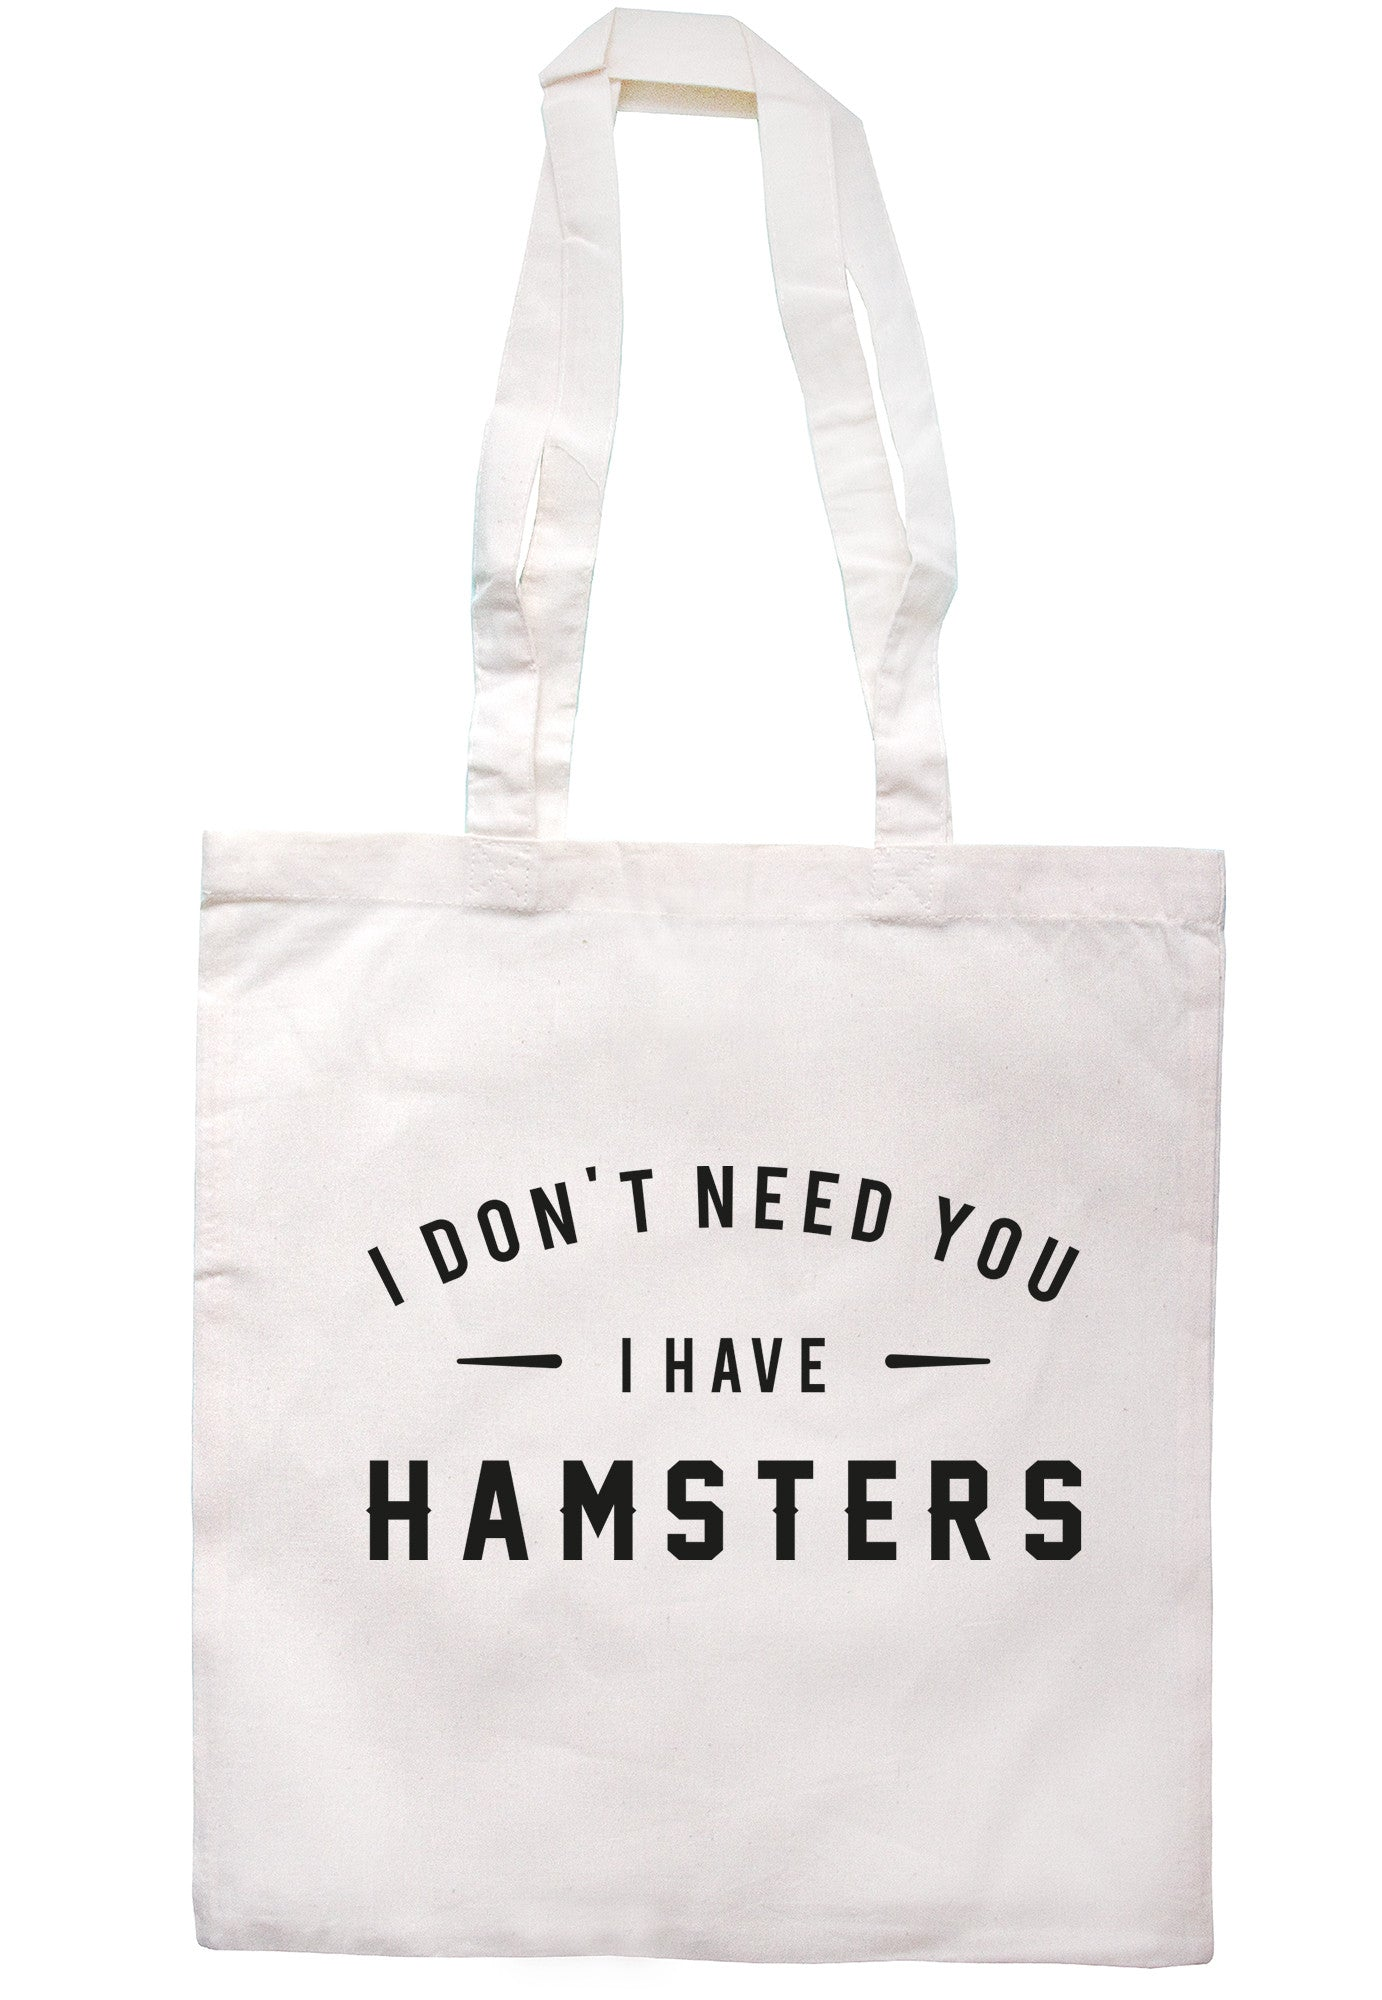 I Don't Need You I Have Hamsters Tote Bag TB0602 - Illustrated Identity Ltd.